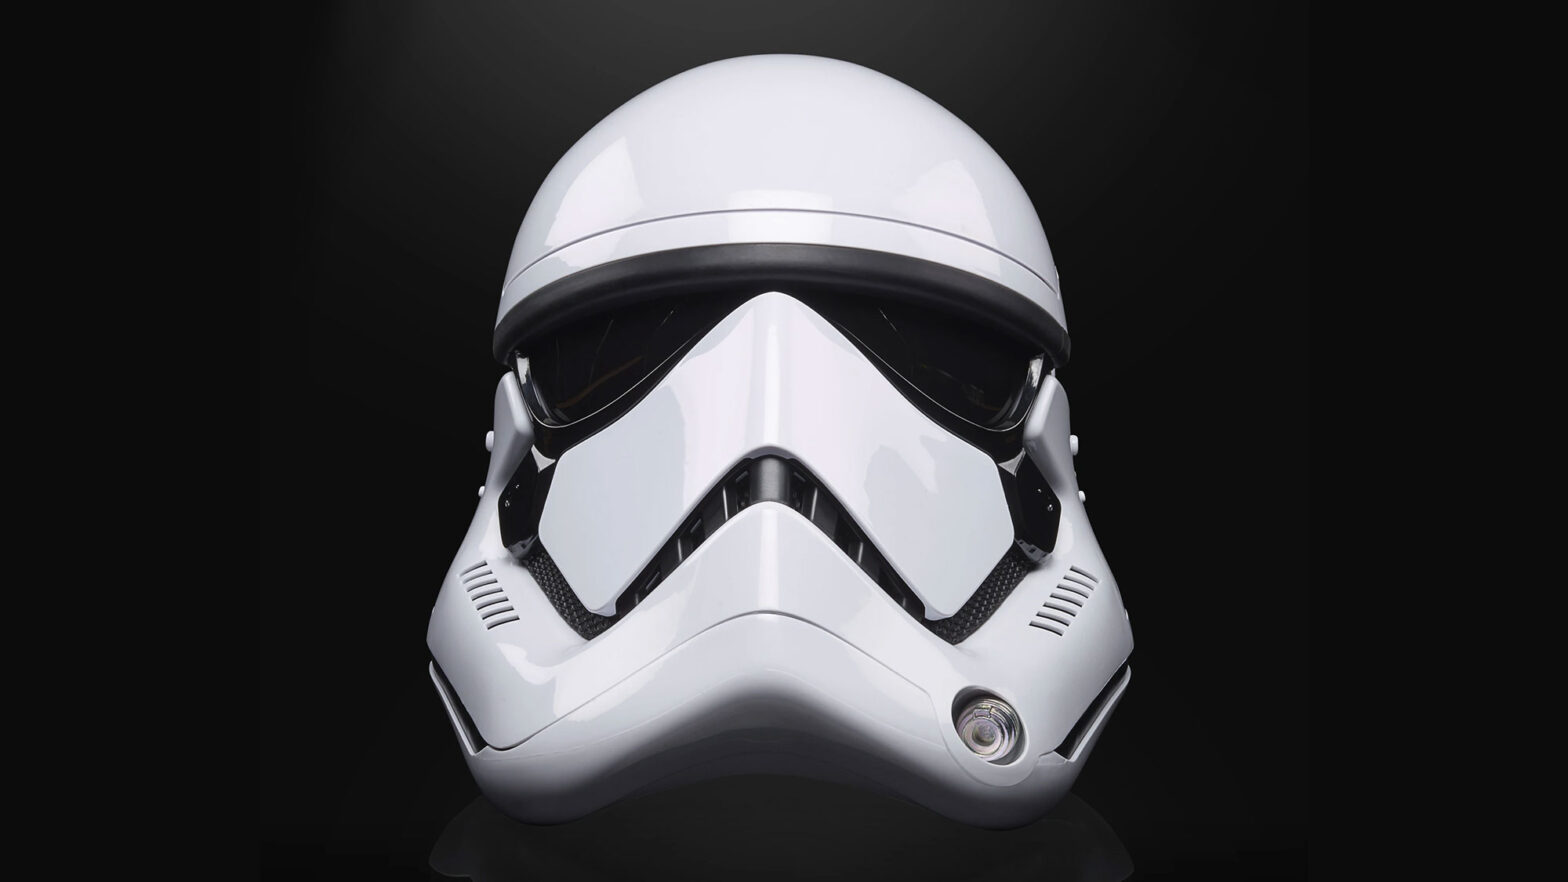 Star Wars The Black Series First Order Stormtrooper Helmet